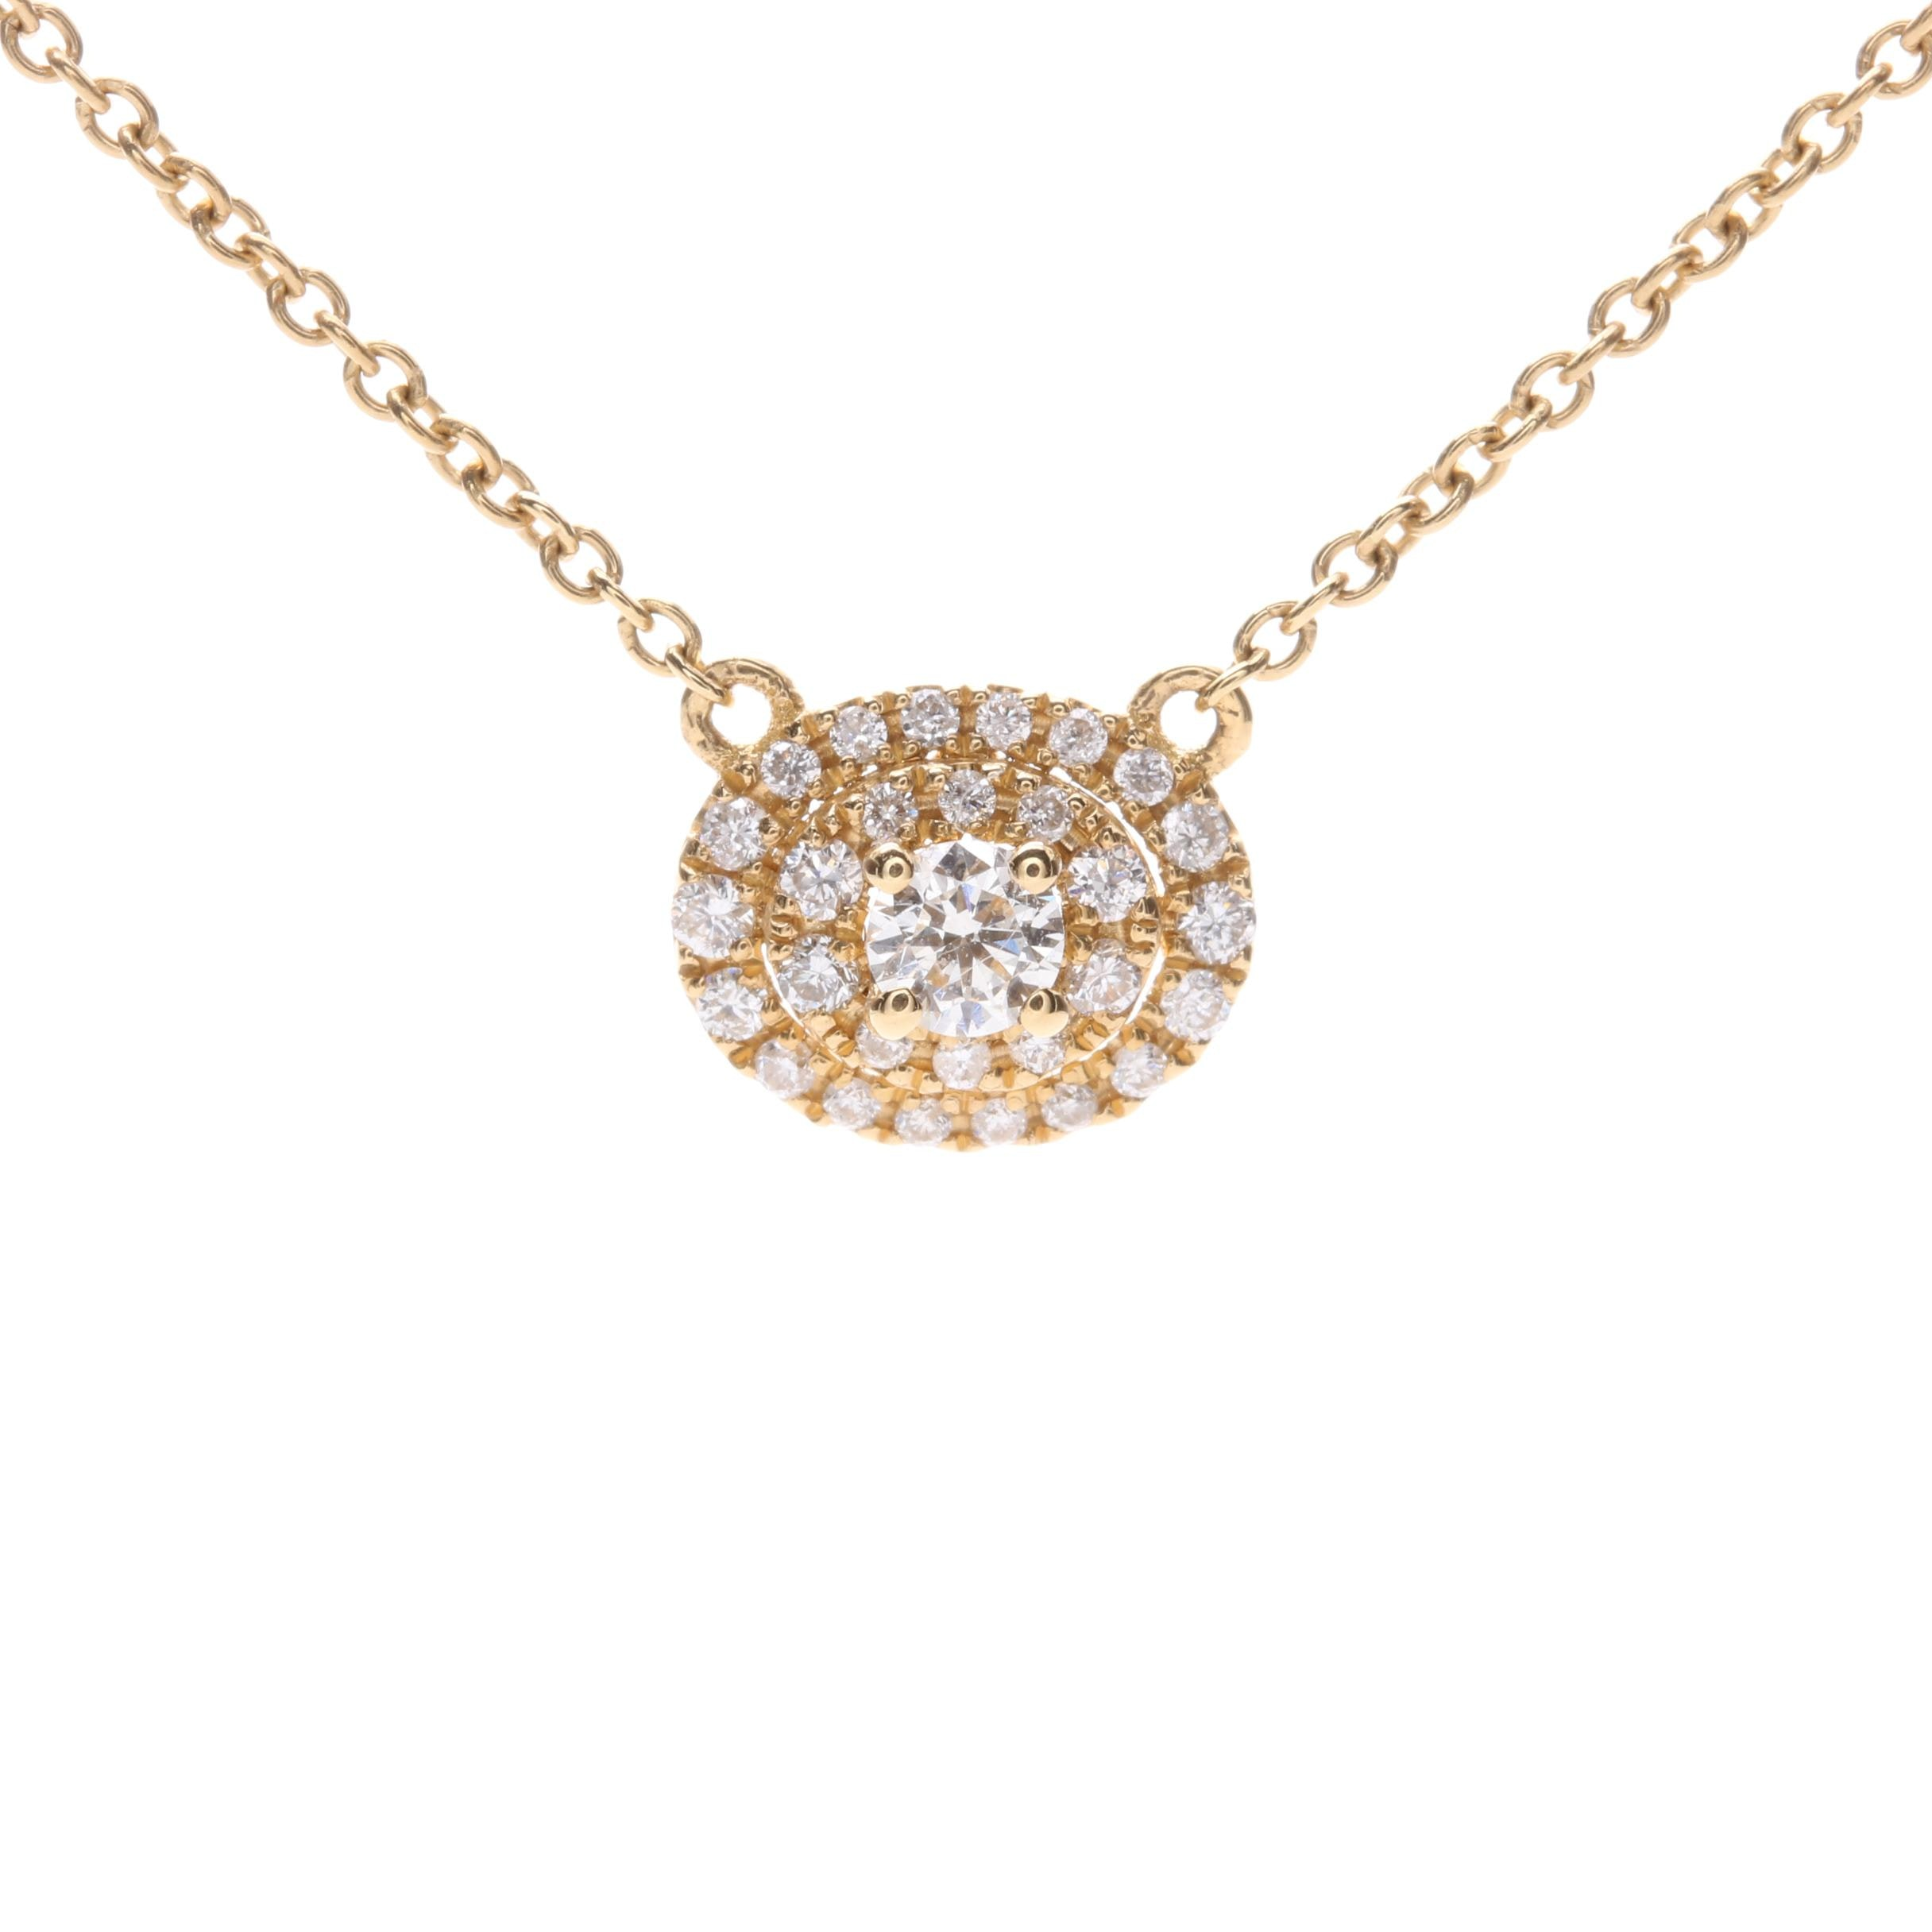 18K Yellow Gold Diamond Pendant Necklace